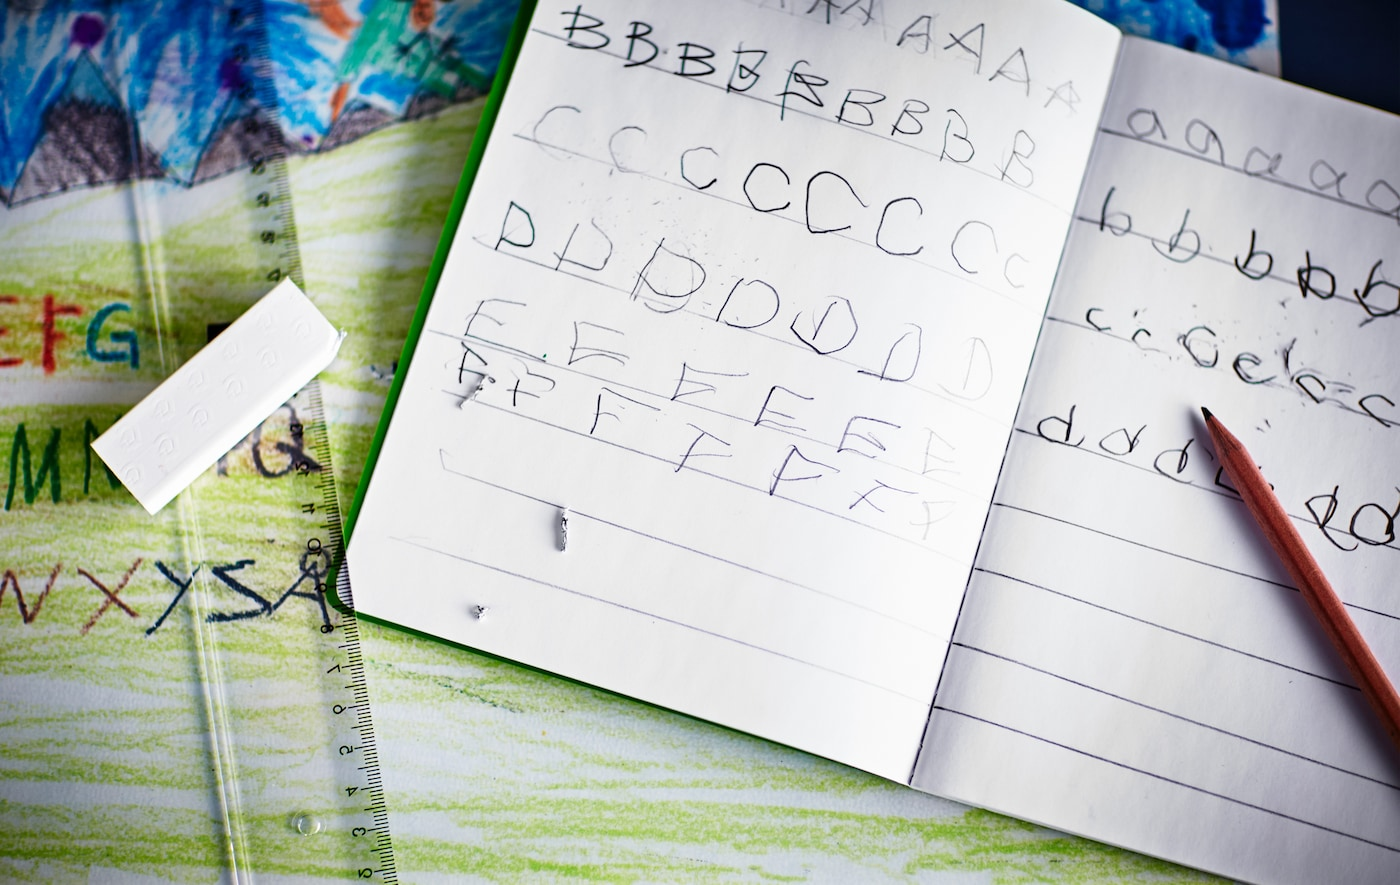 A close-up image of a notebook with children's handwriting as they practice the English alphabet.